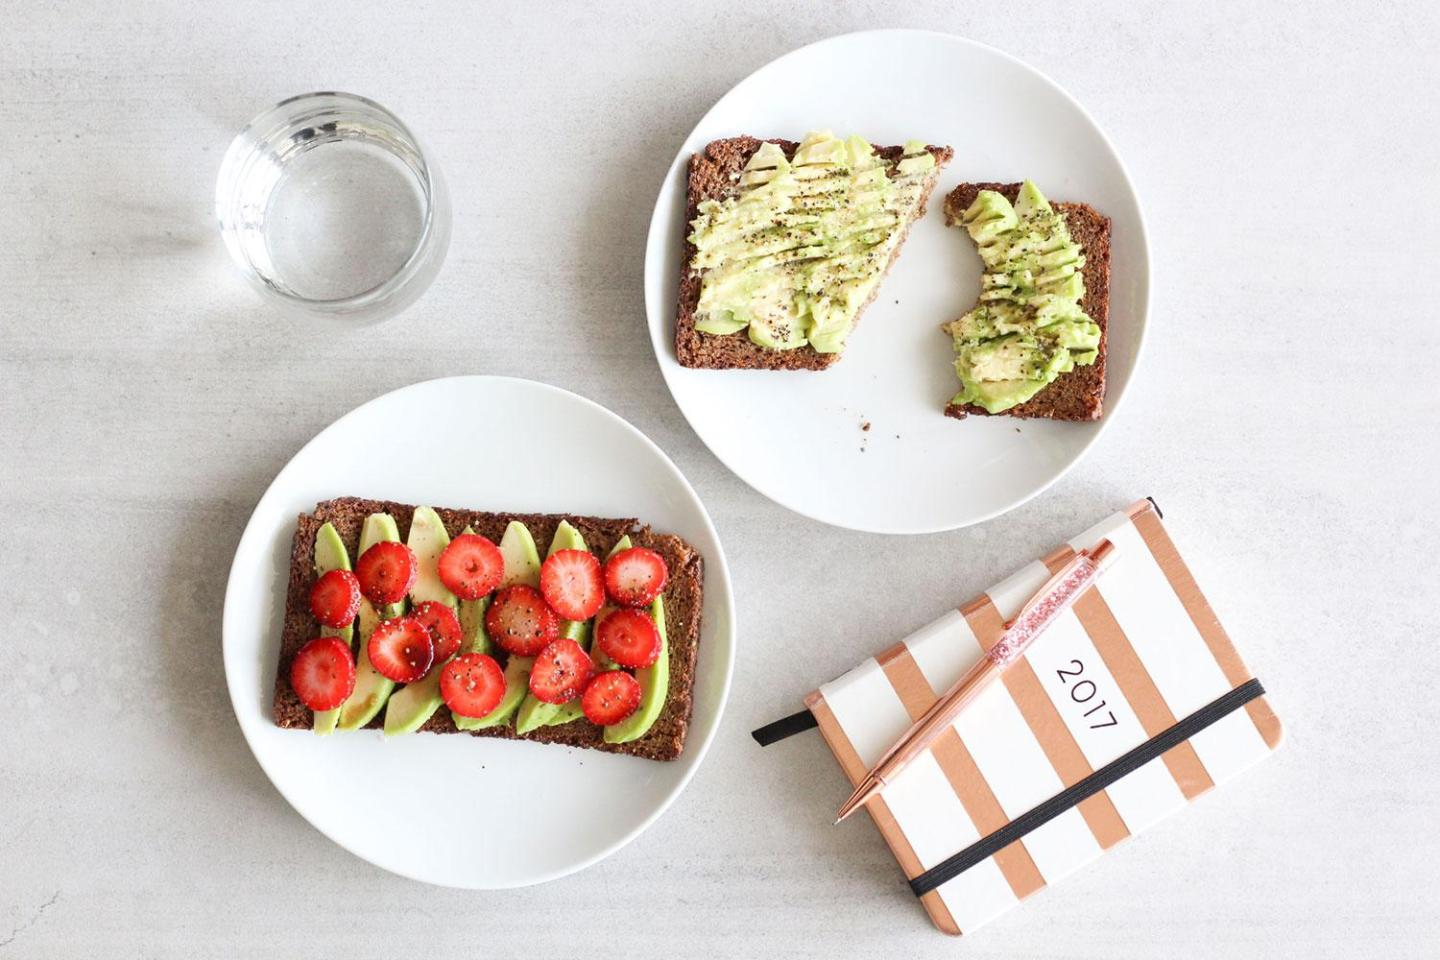 Easy & Healthy Snack Ideas That You'll Love!